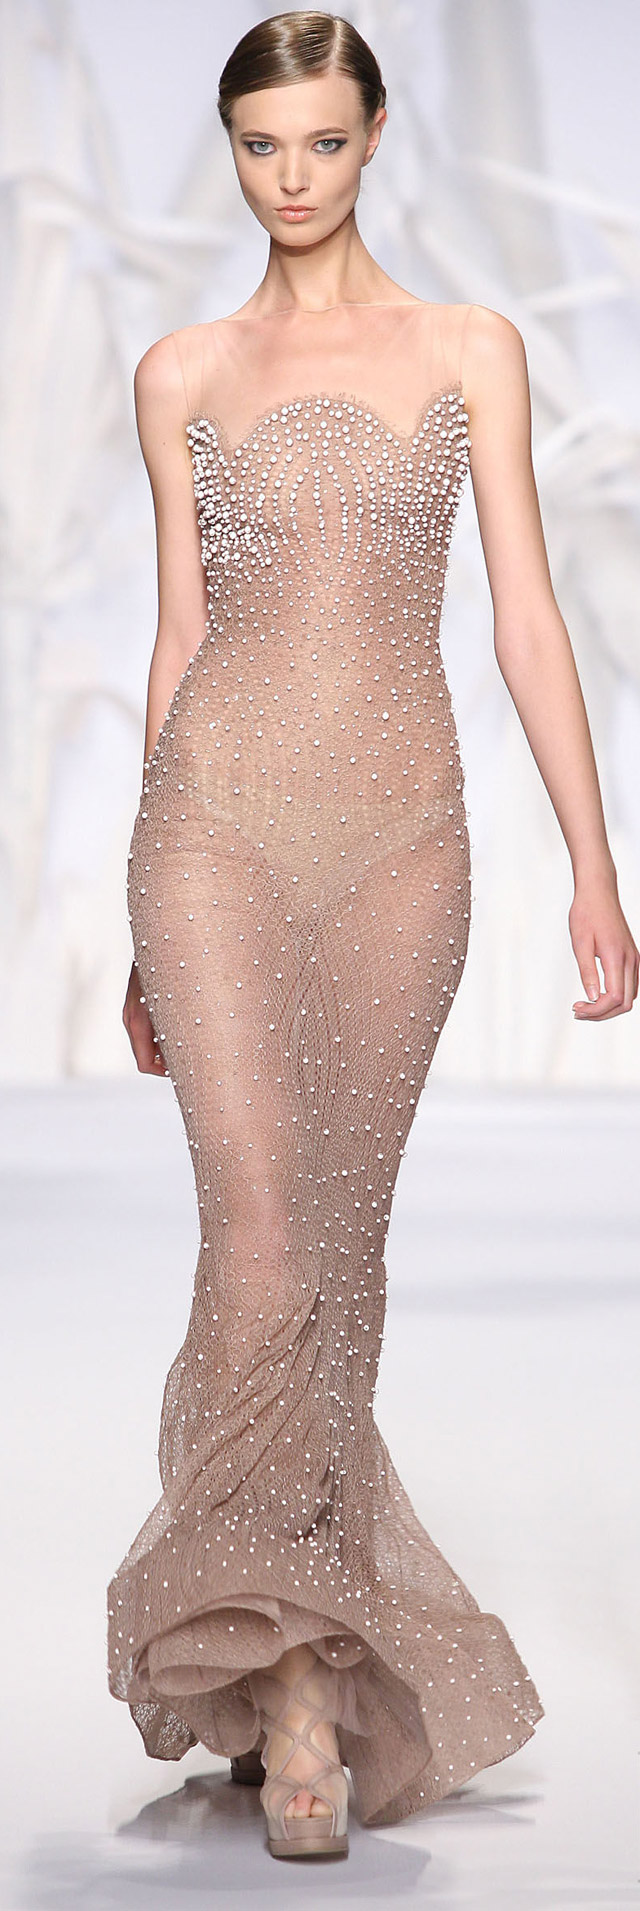 Abed Mahfouz Haute Couture Fall-Winter 2013-2014 (5)